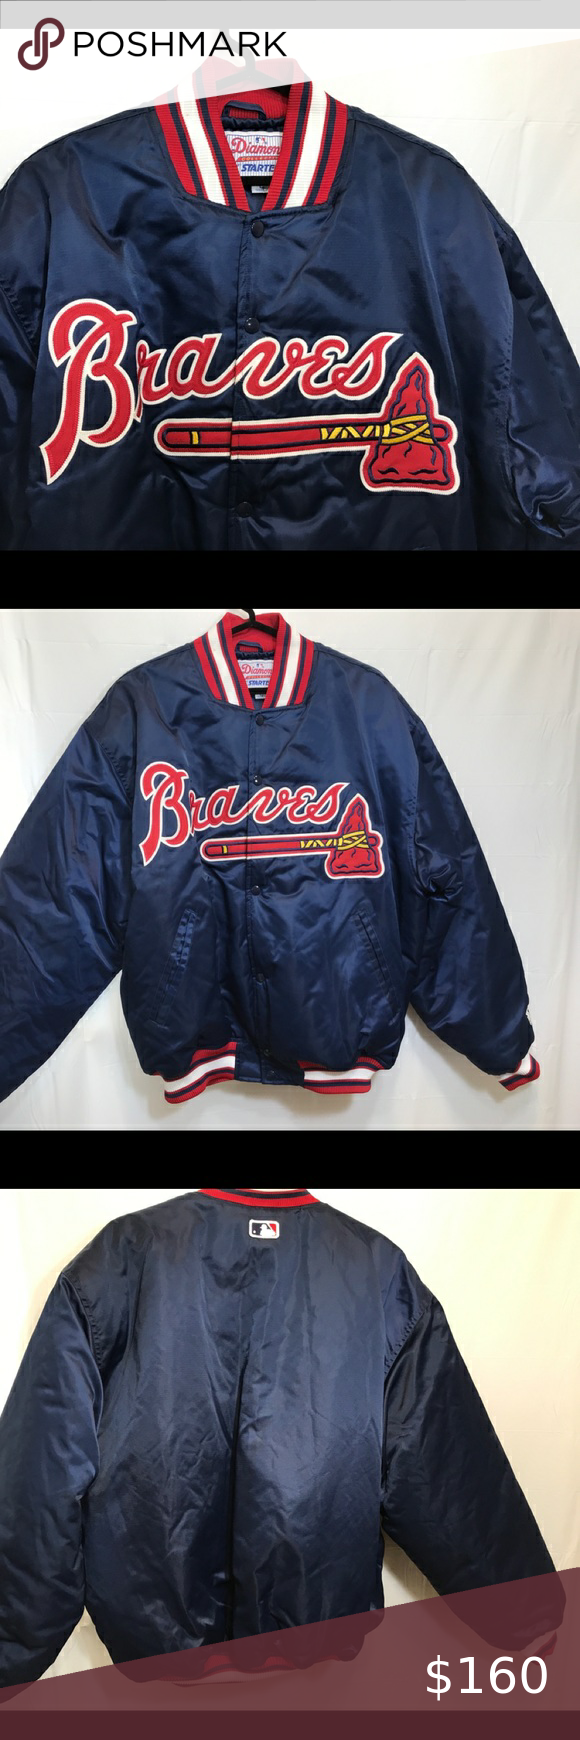 Vintage Atlanta Braves Starter Satin Snap Jacket Vintage 90 S Starter Mlb Atlanta Braves Diamond Collection Snap But In 2020 Satin Bomber Jacket Atlanta Braves Jackets